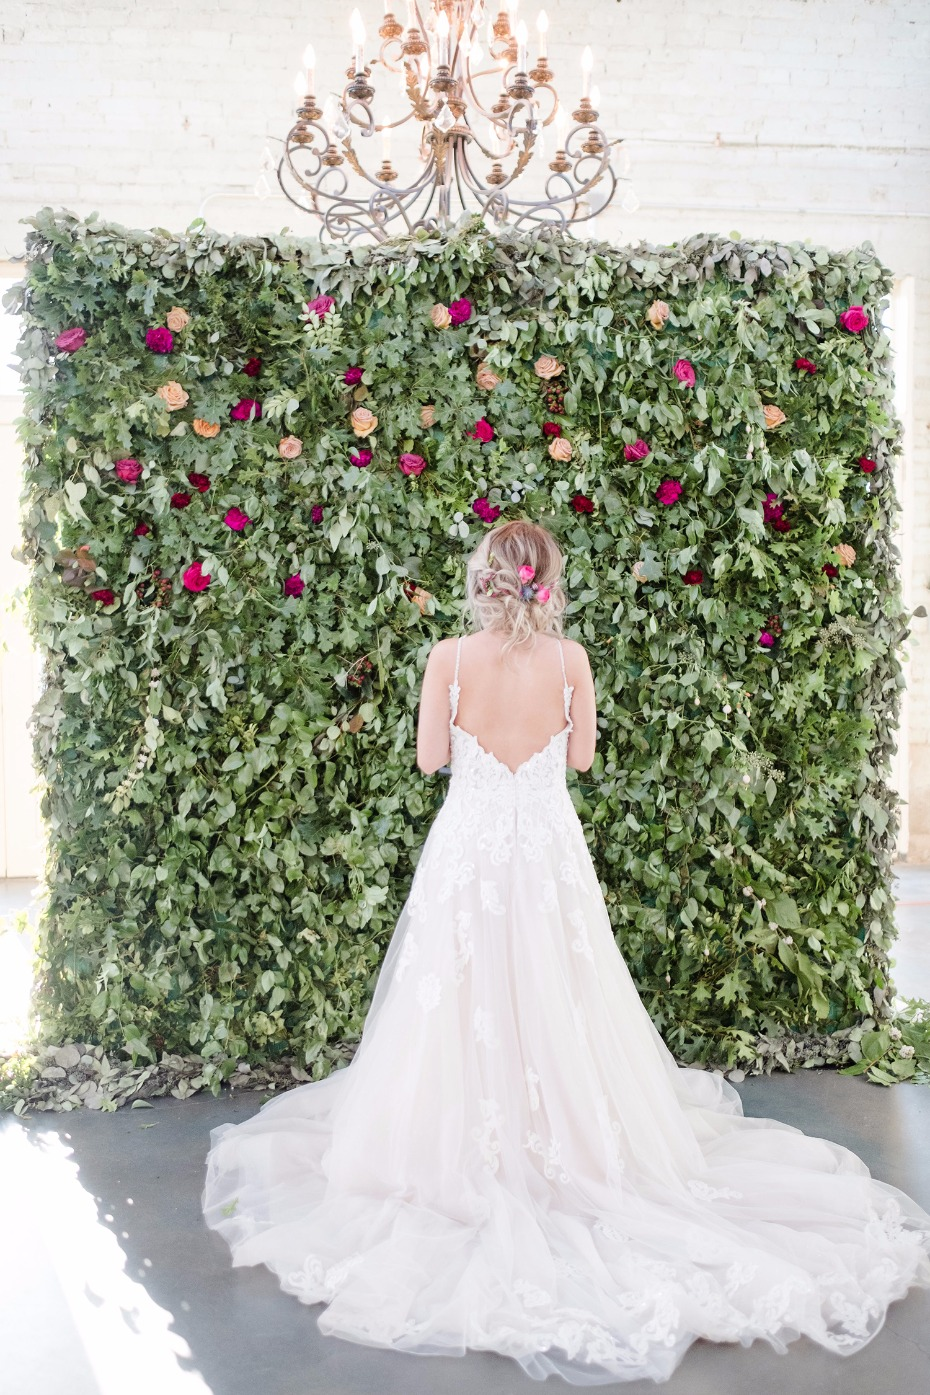 wedding dress dreams and romantic rose wall